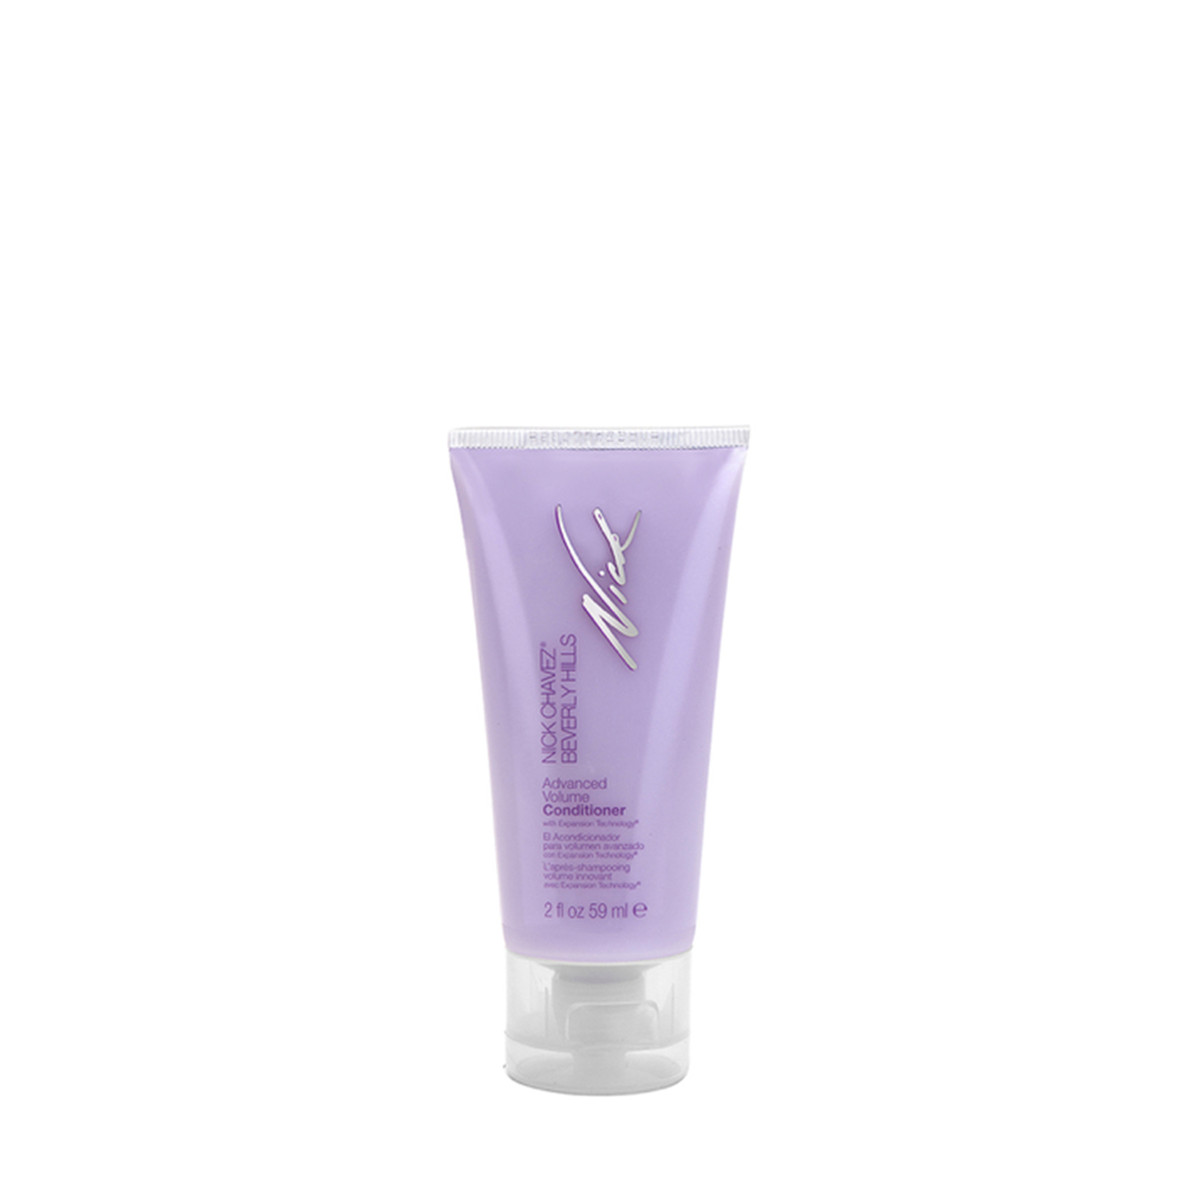 Advanced Volume Conditioner with Expansion Technology 2oz.